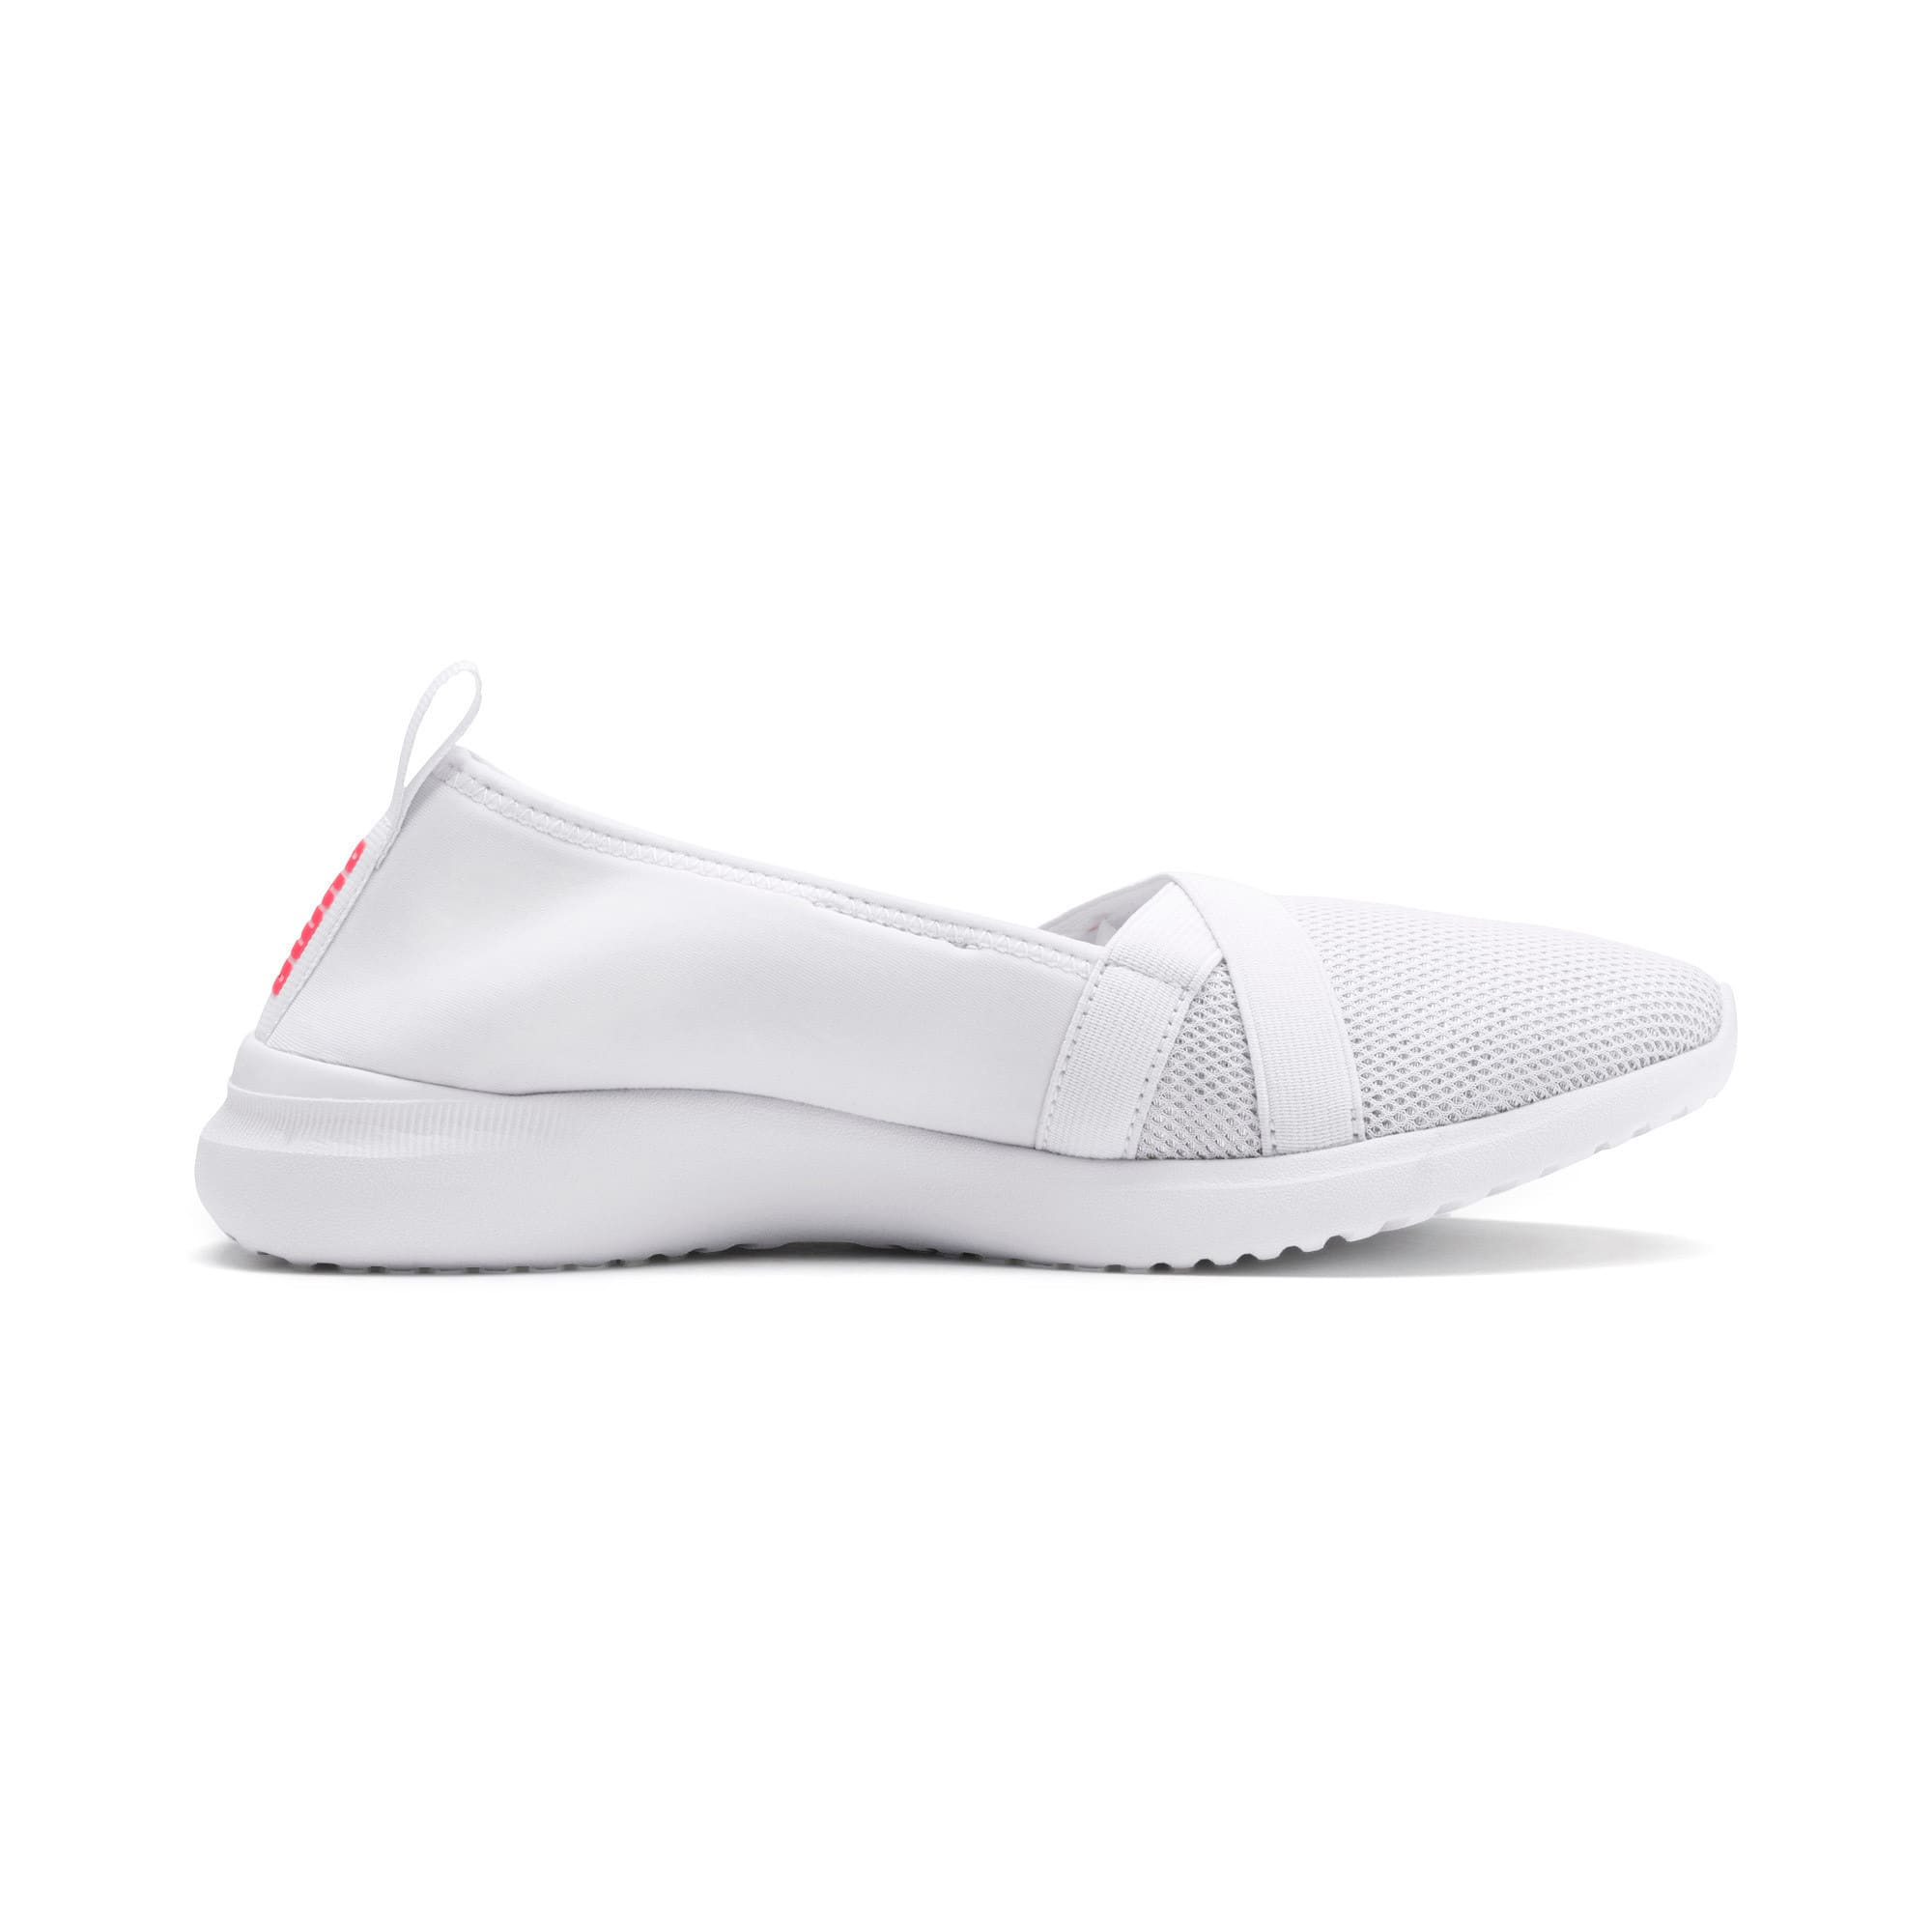 Thumbnail 5 of Adelina Sparkle Women's Trainers, Puma White-Pink Alert, medium-IND